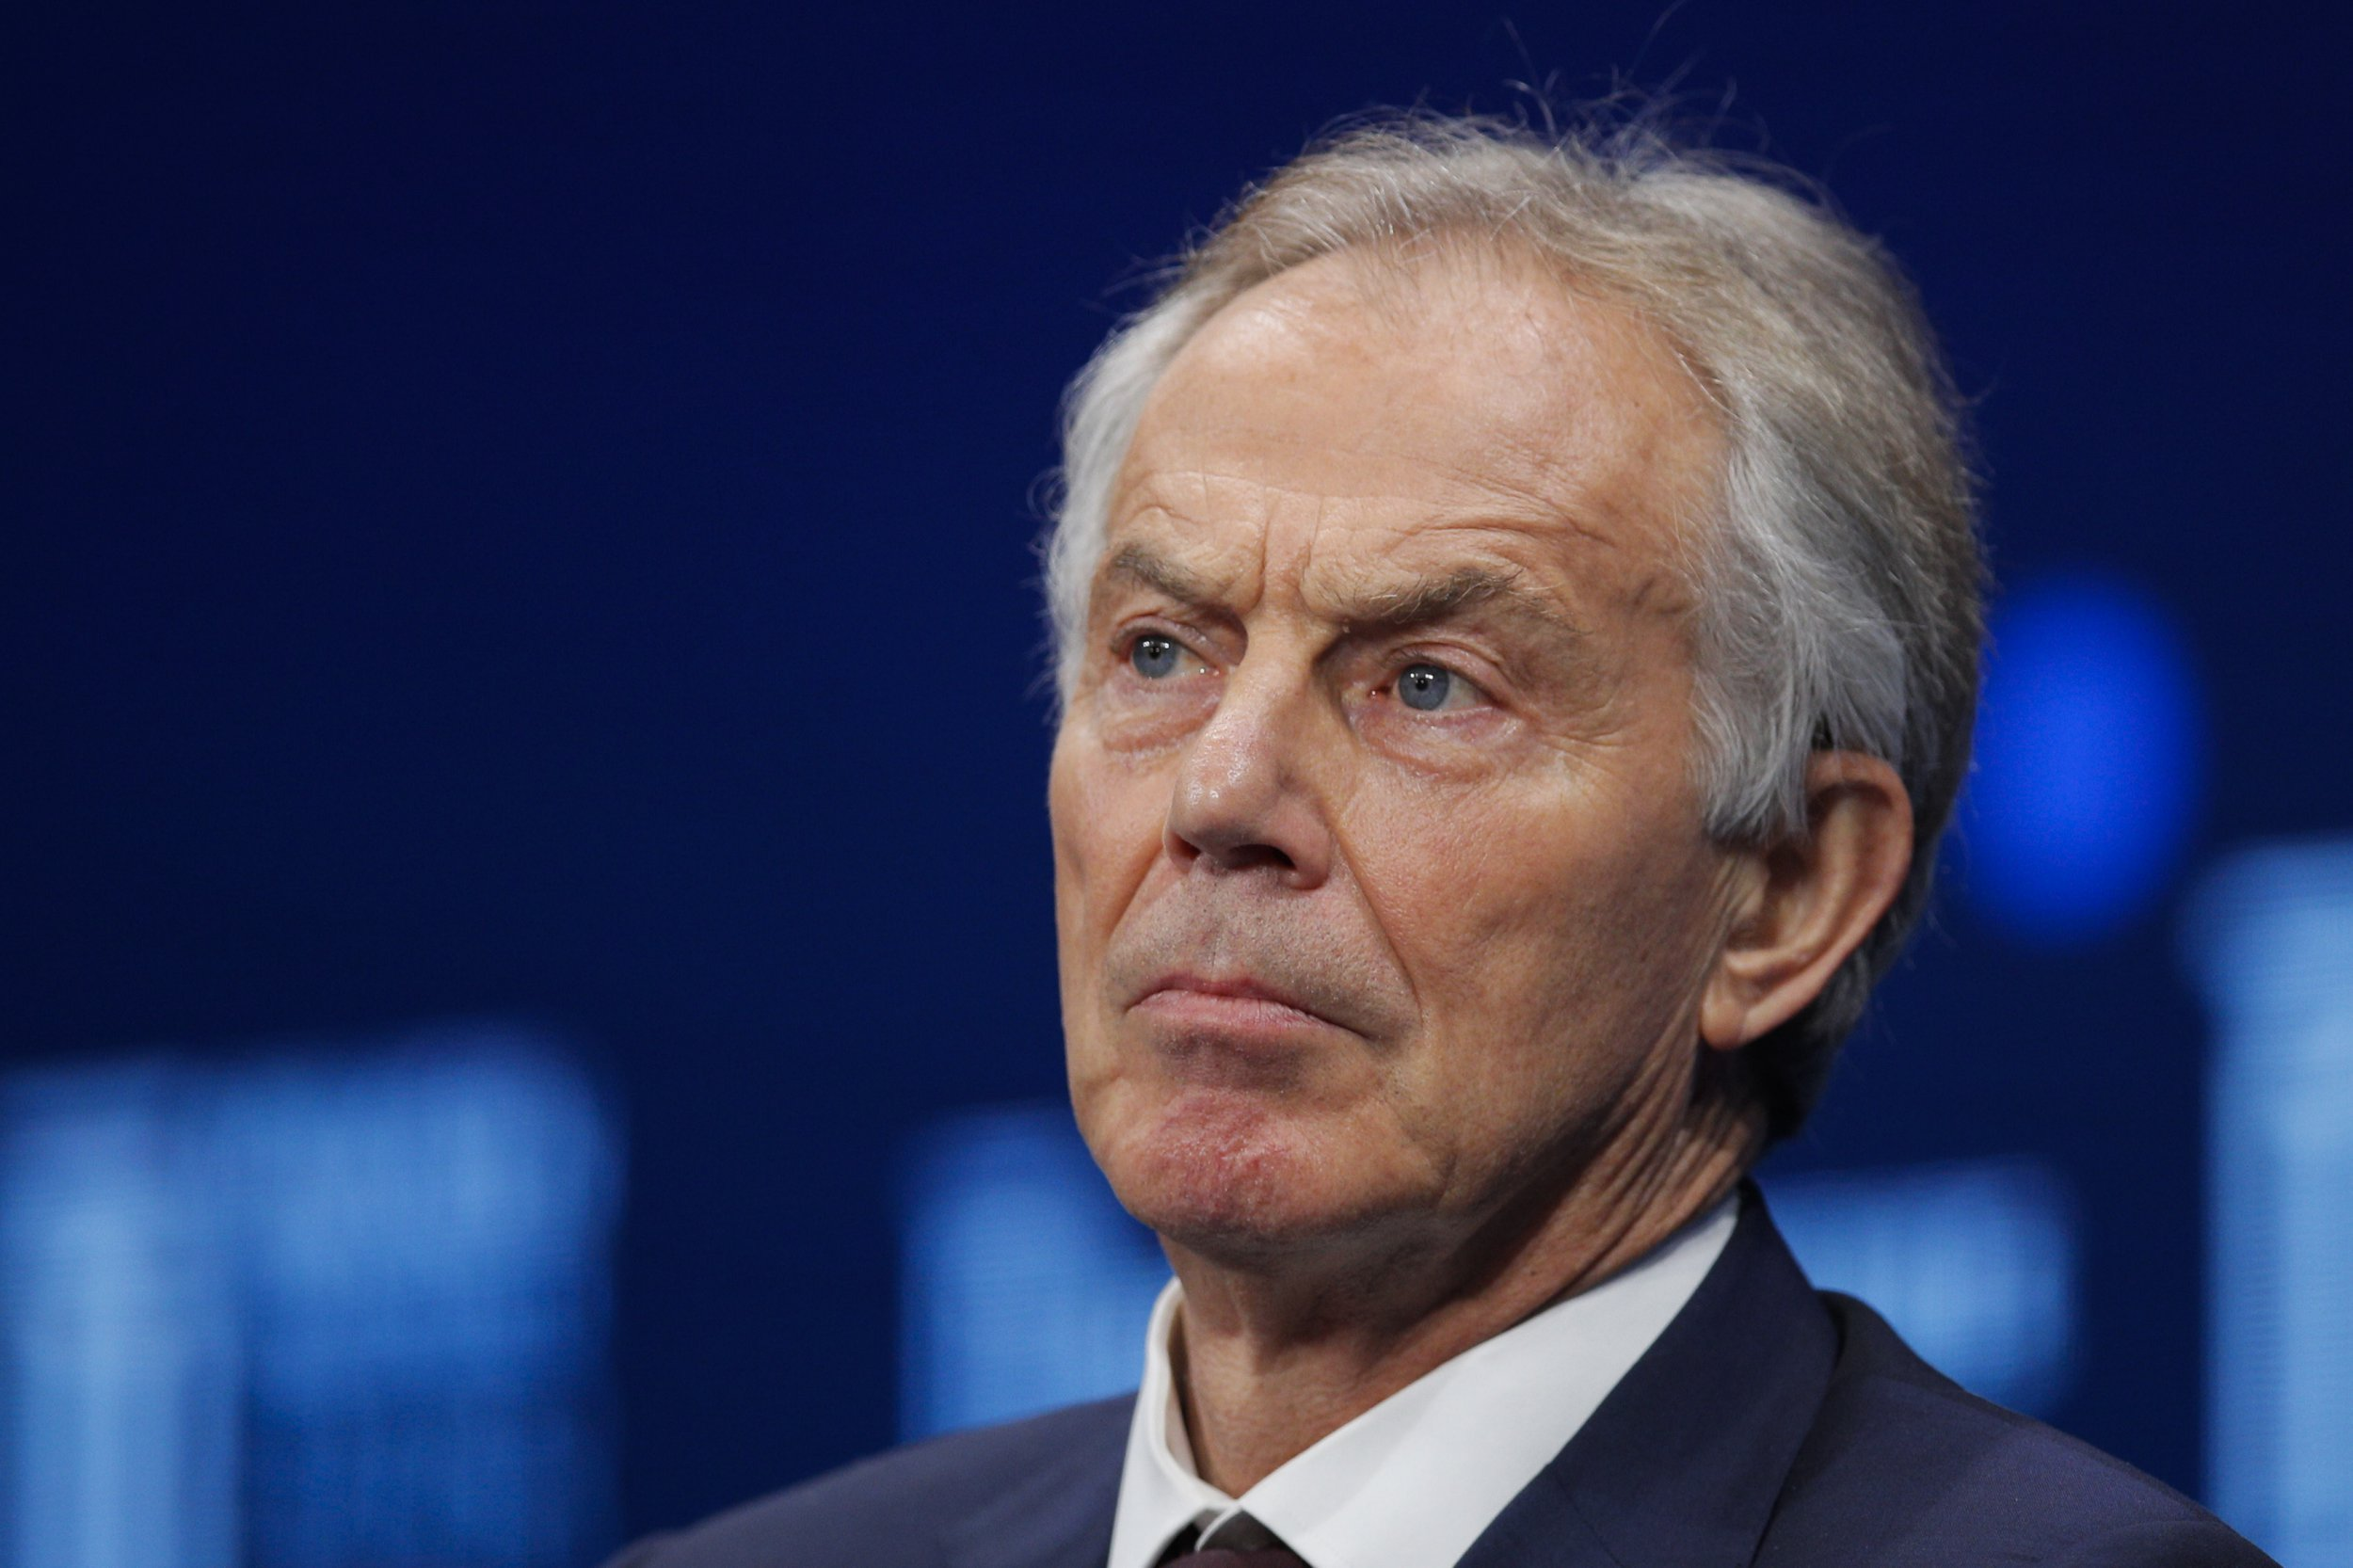 """FILE - In this file photo dated Monday, April 30, 2018, former British Prime Minister Tony Blair during a discussion at the Milken Institute Global Conference, in Beverly Hills, Calif. USA. In an interview with the BBC on Friday Sept. 7, 2018, Blair said Labour under Jeremy Corbyn is a """"different party"""" and said he is unsure whether the party can be """"taken back"""" by moderates. (AP Photo/Jae C. Hong, FILE)"""